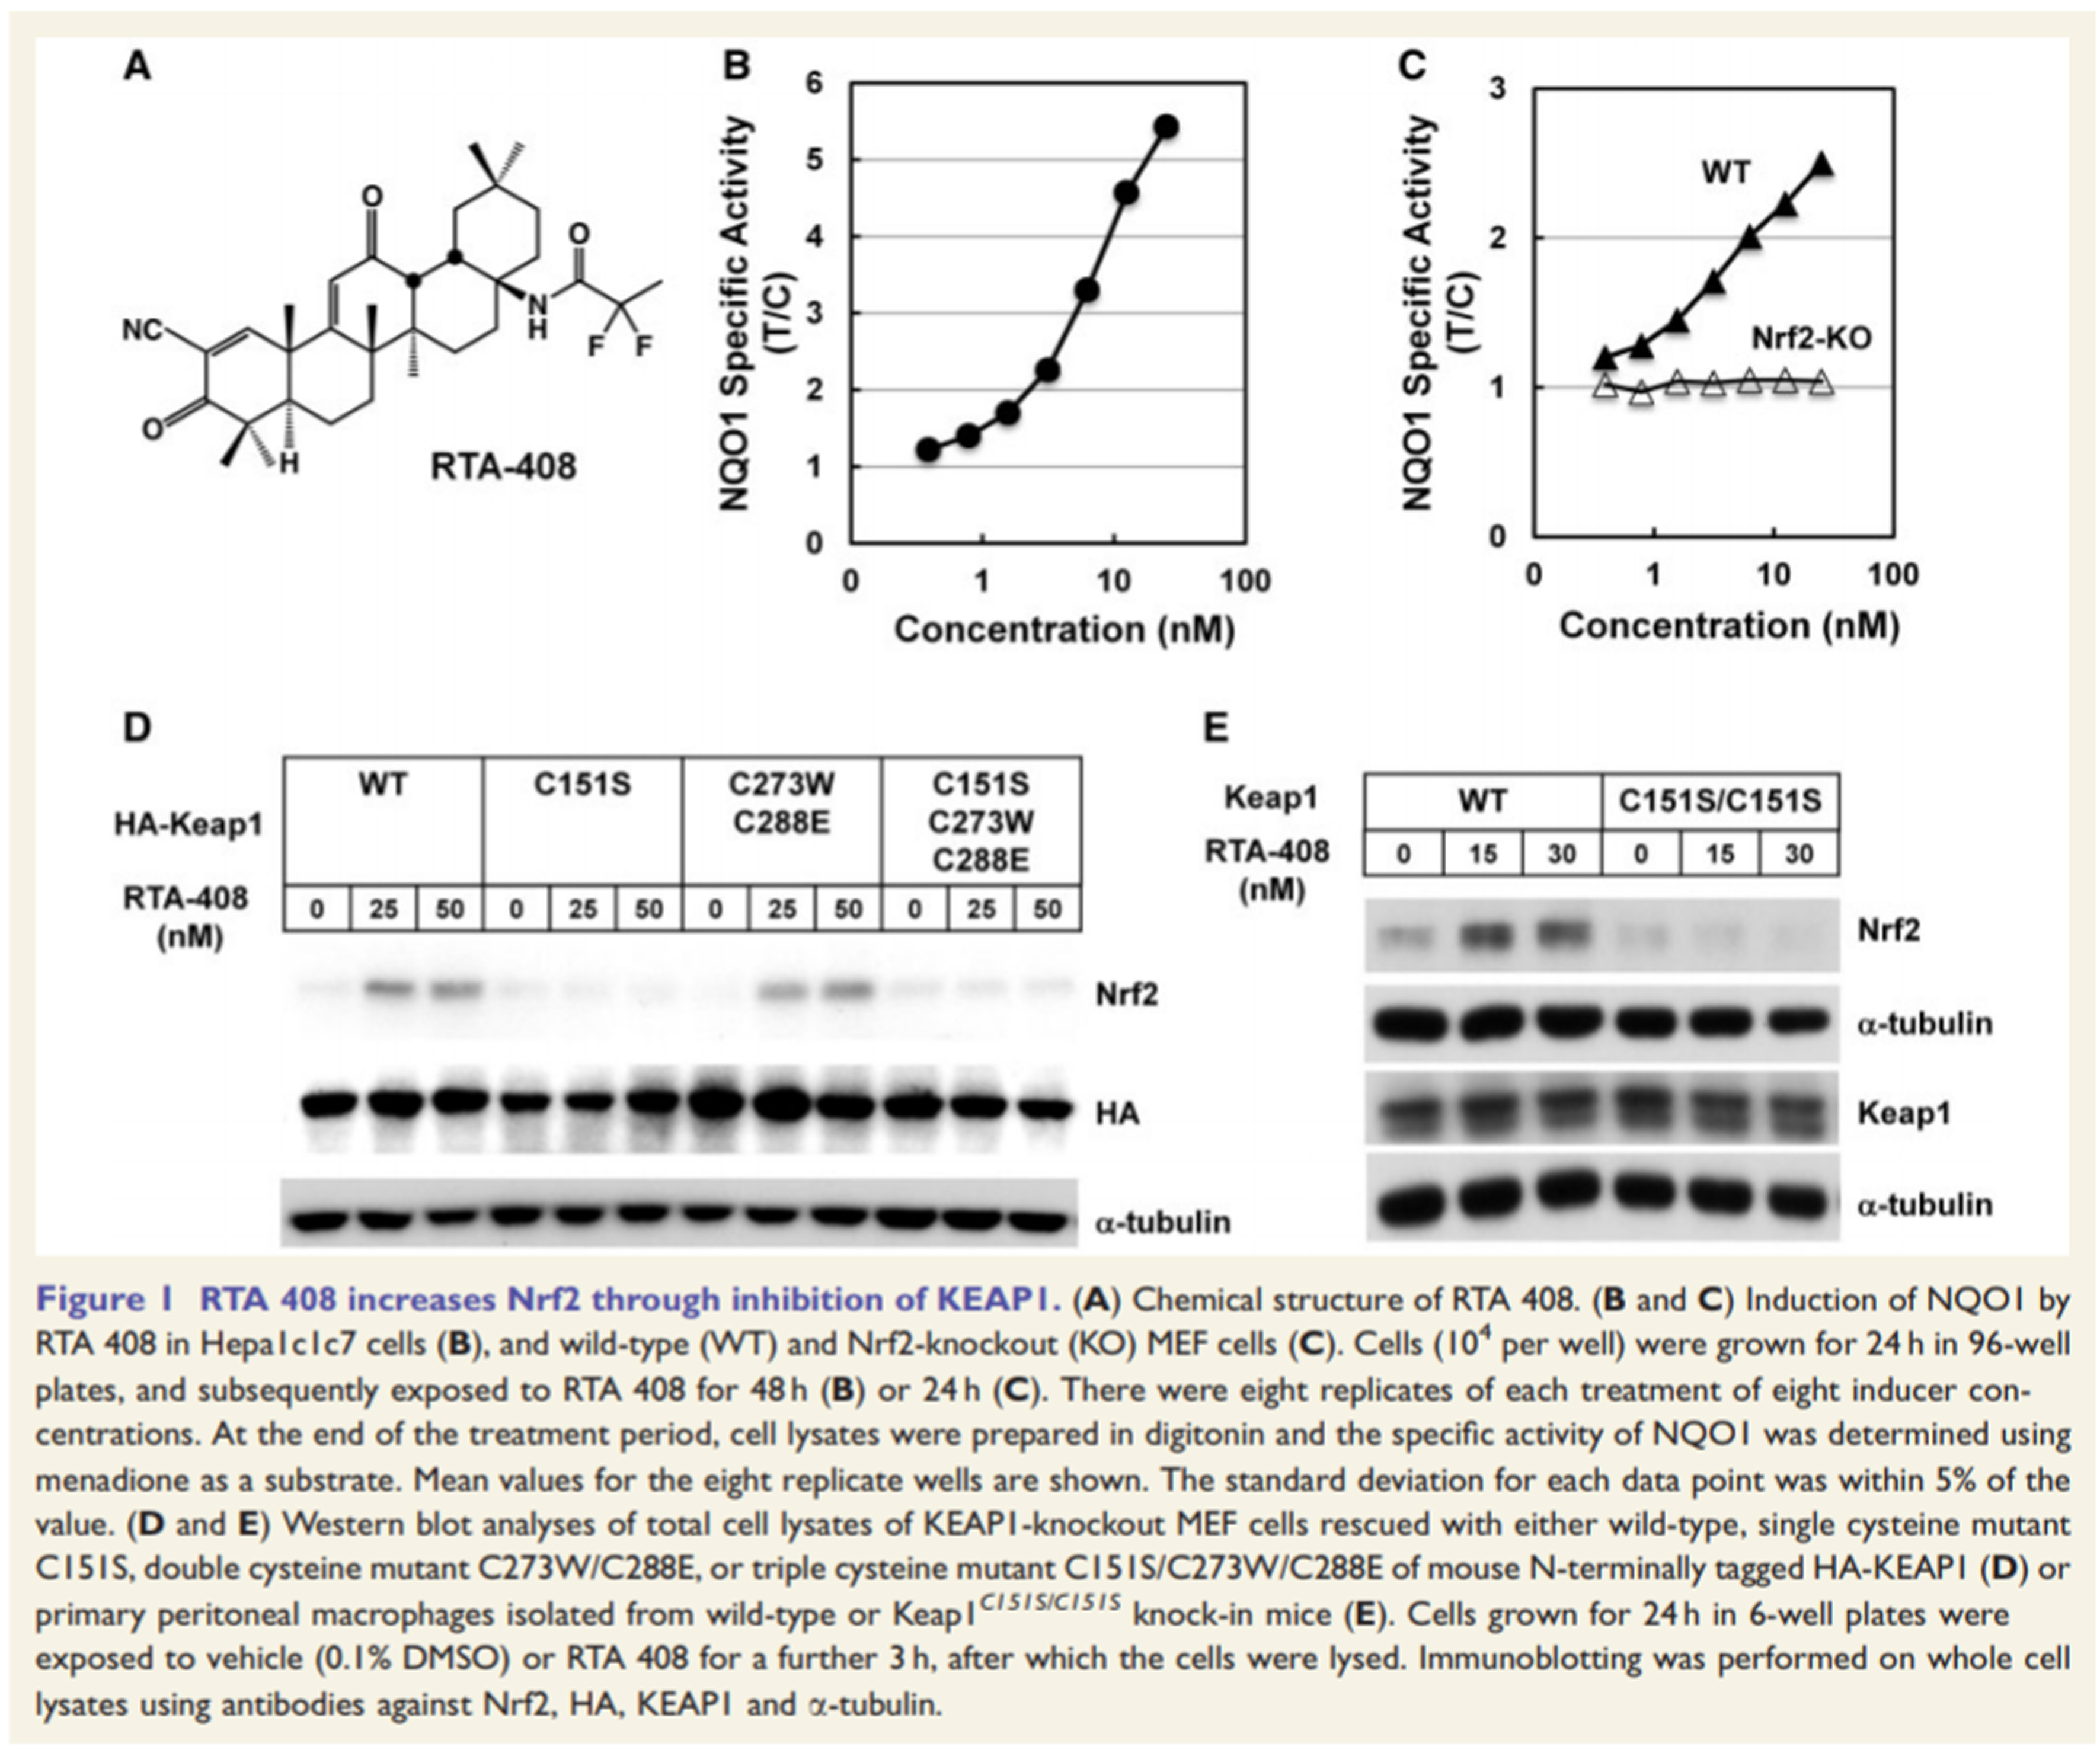 rta 408, status epilepticus, KEAP1 inhibition is neuroprotective and suppresses the development of epilepsy